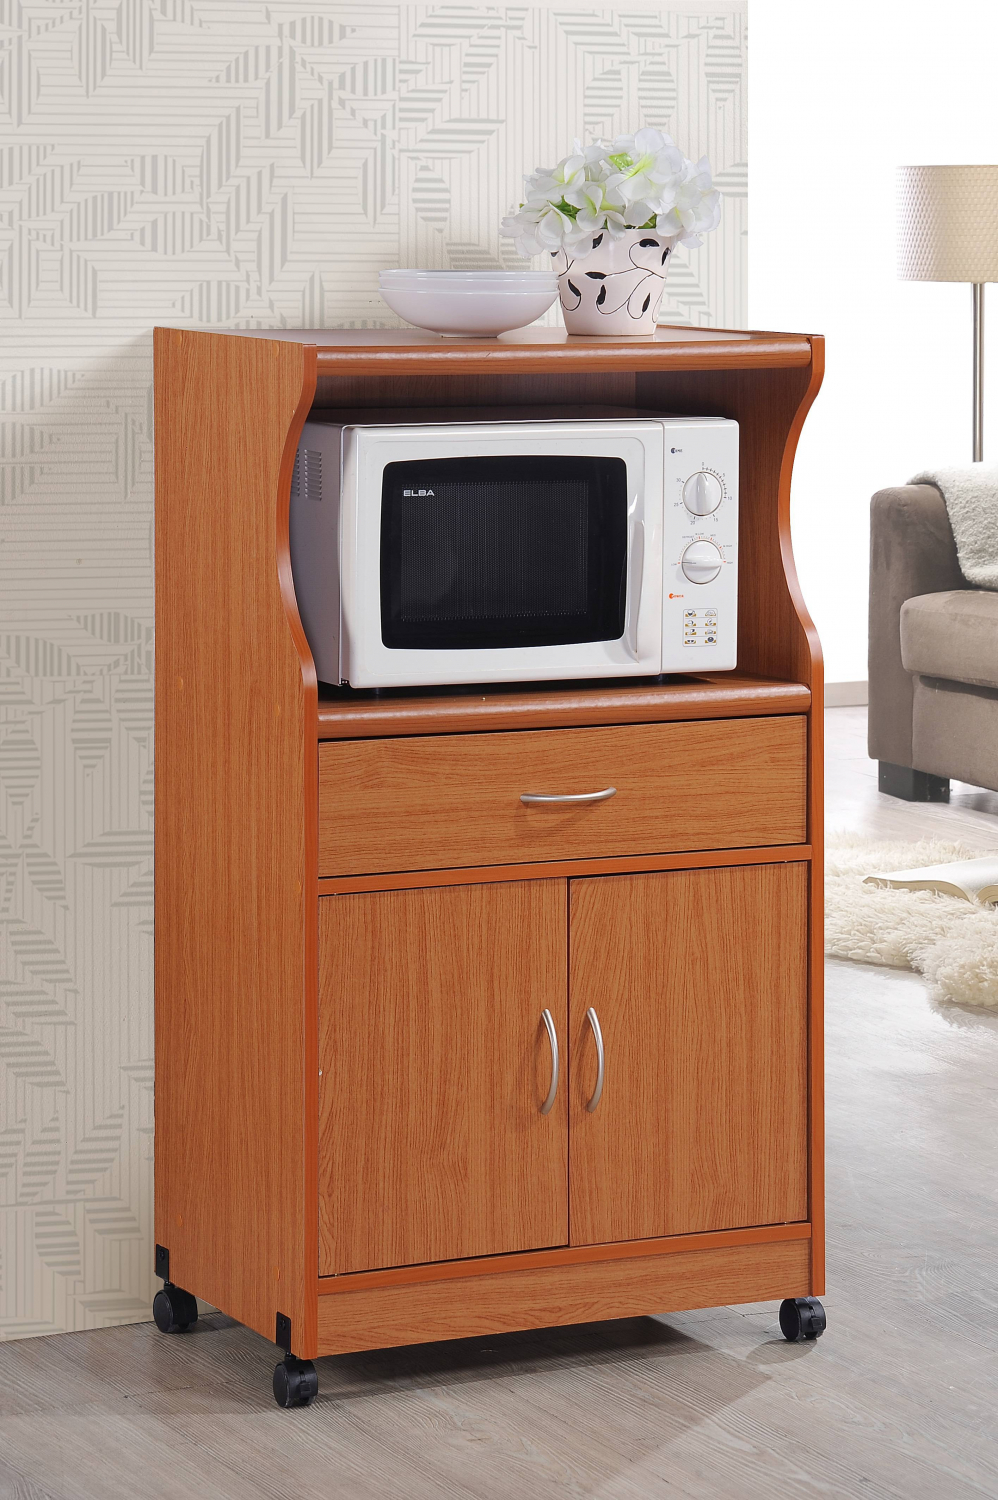 Details about Hodedah Cherry Microwave Kitchen Rolling Cart Stand Wood  Drawer 2-Door Cabinet